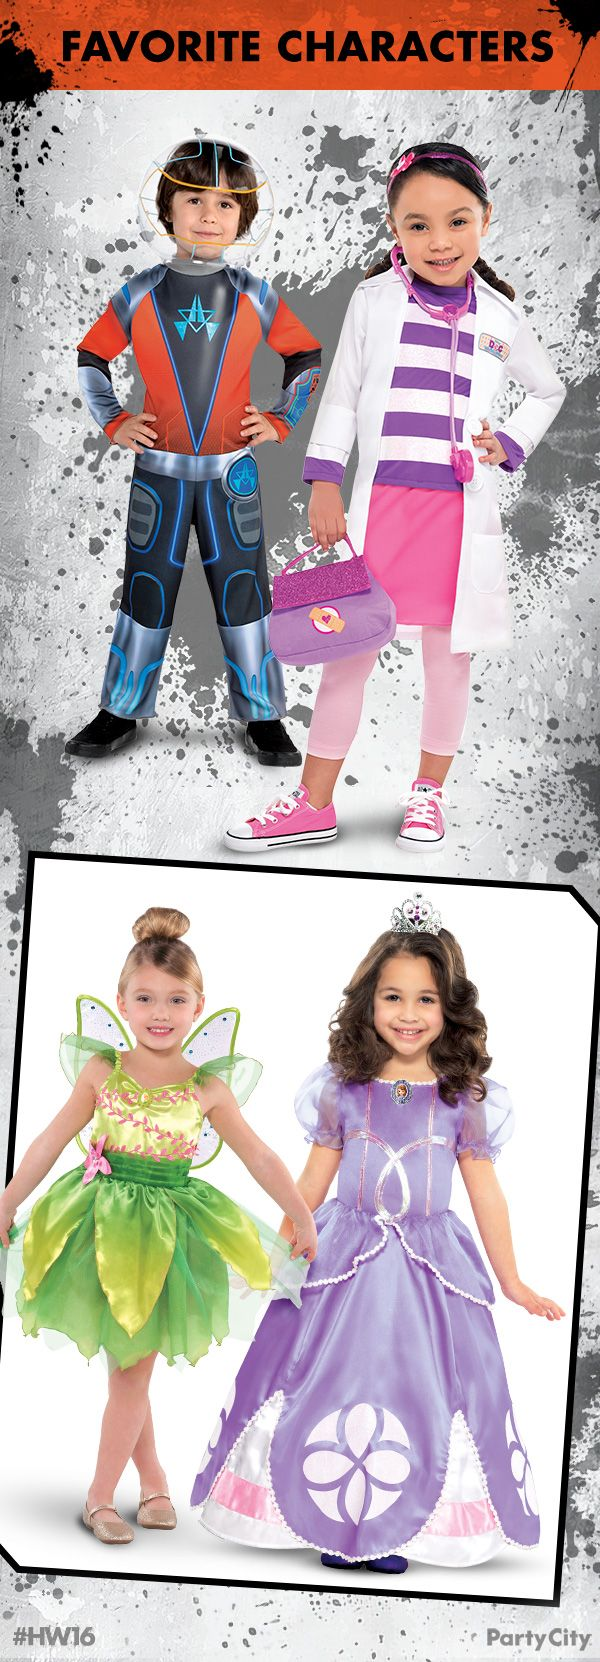 Get your favorite character costume for the whole family from ...